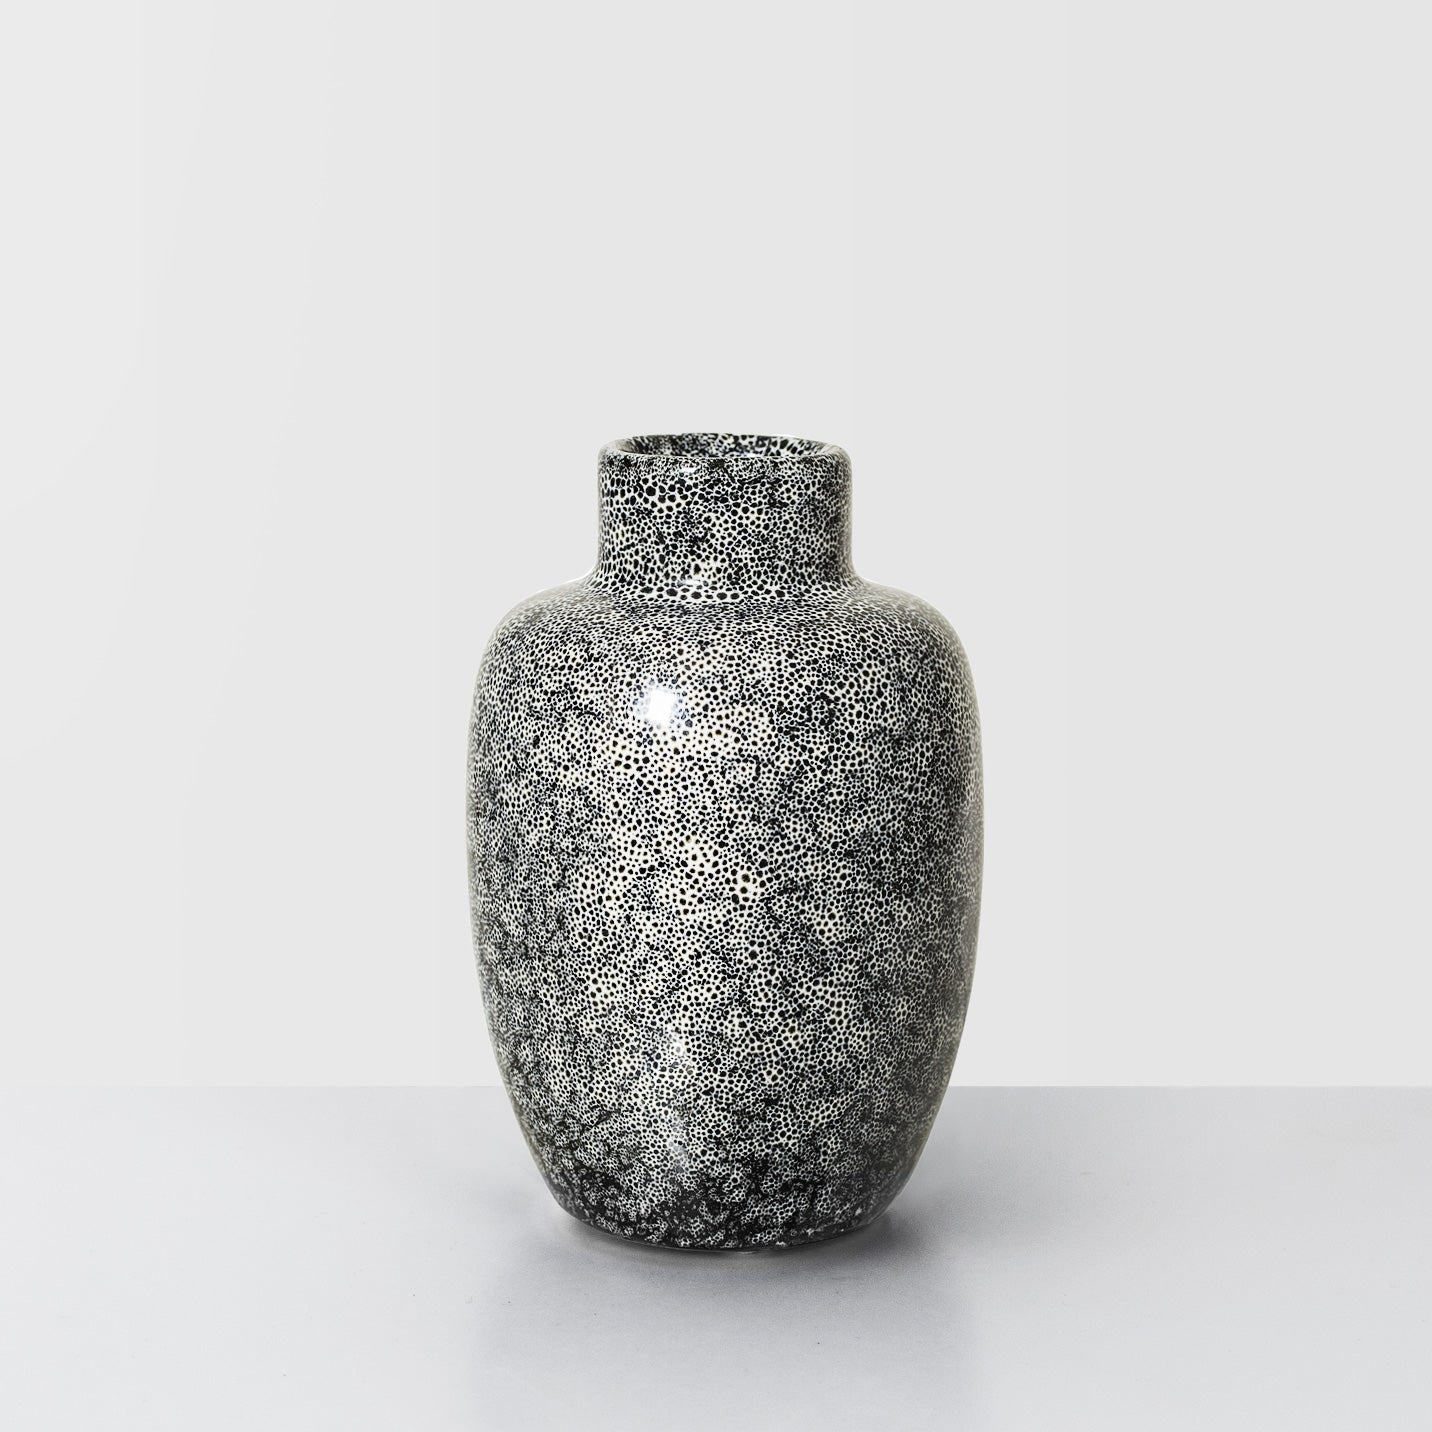 Black speckle glazed Stoneware vase